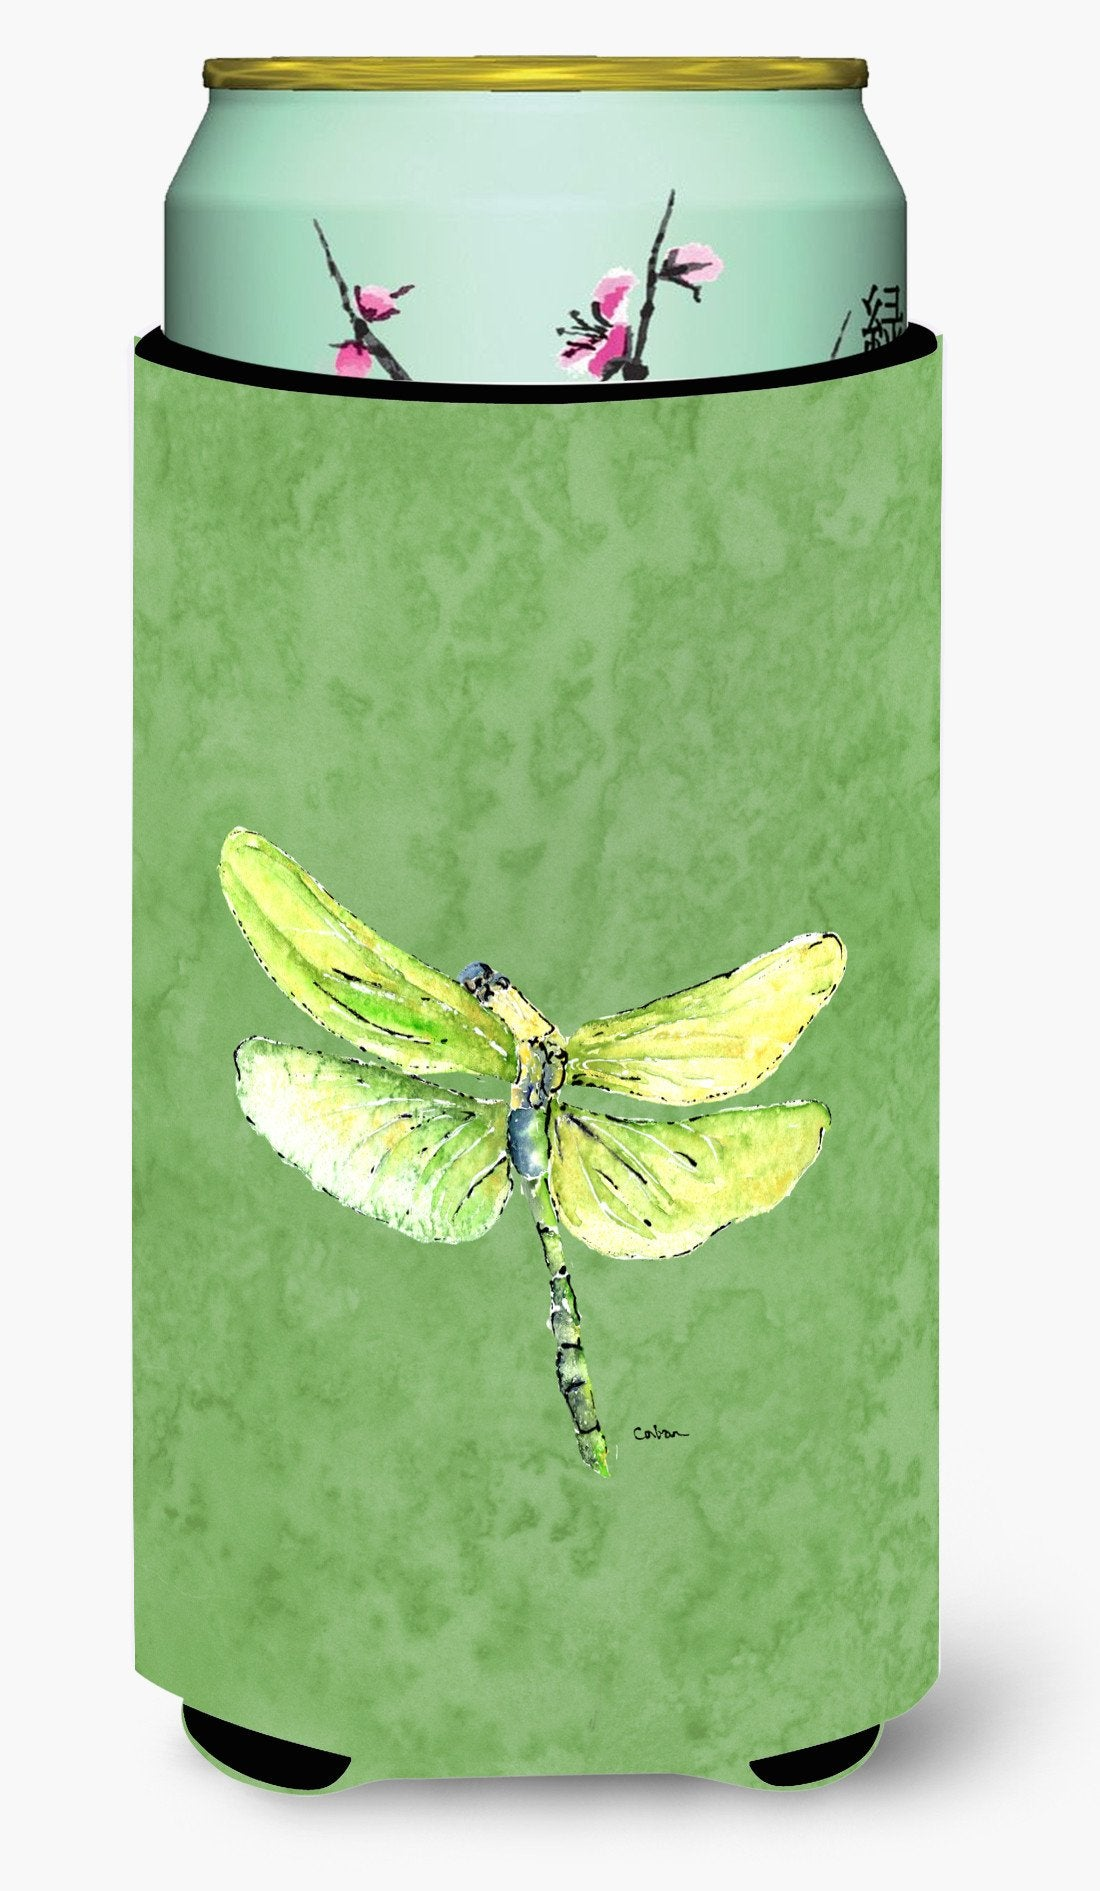 Dragonfly on Avacado  Tall Boy Beverage Insulator Beverage Insulator Hugger by Caroline's Treasures